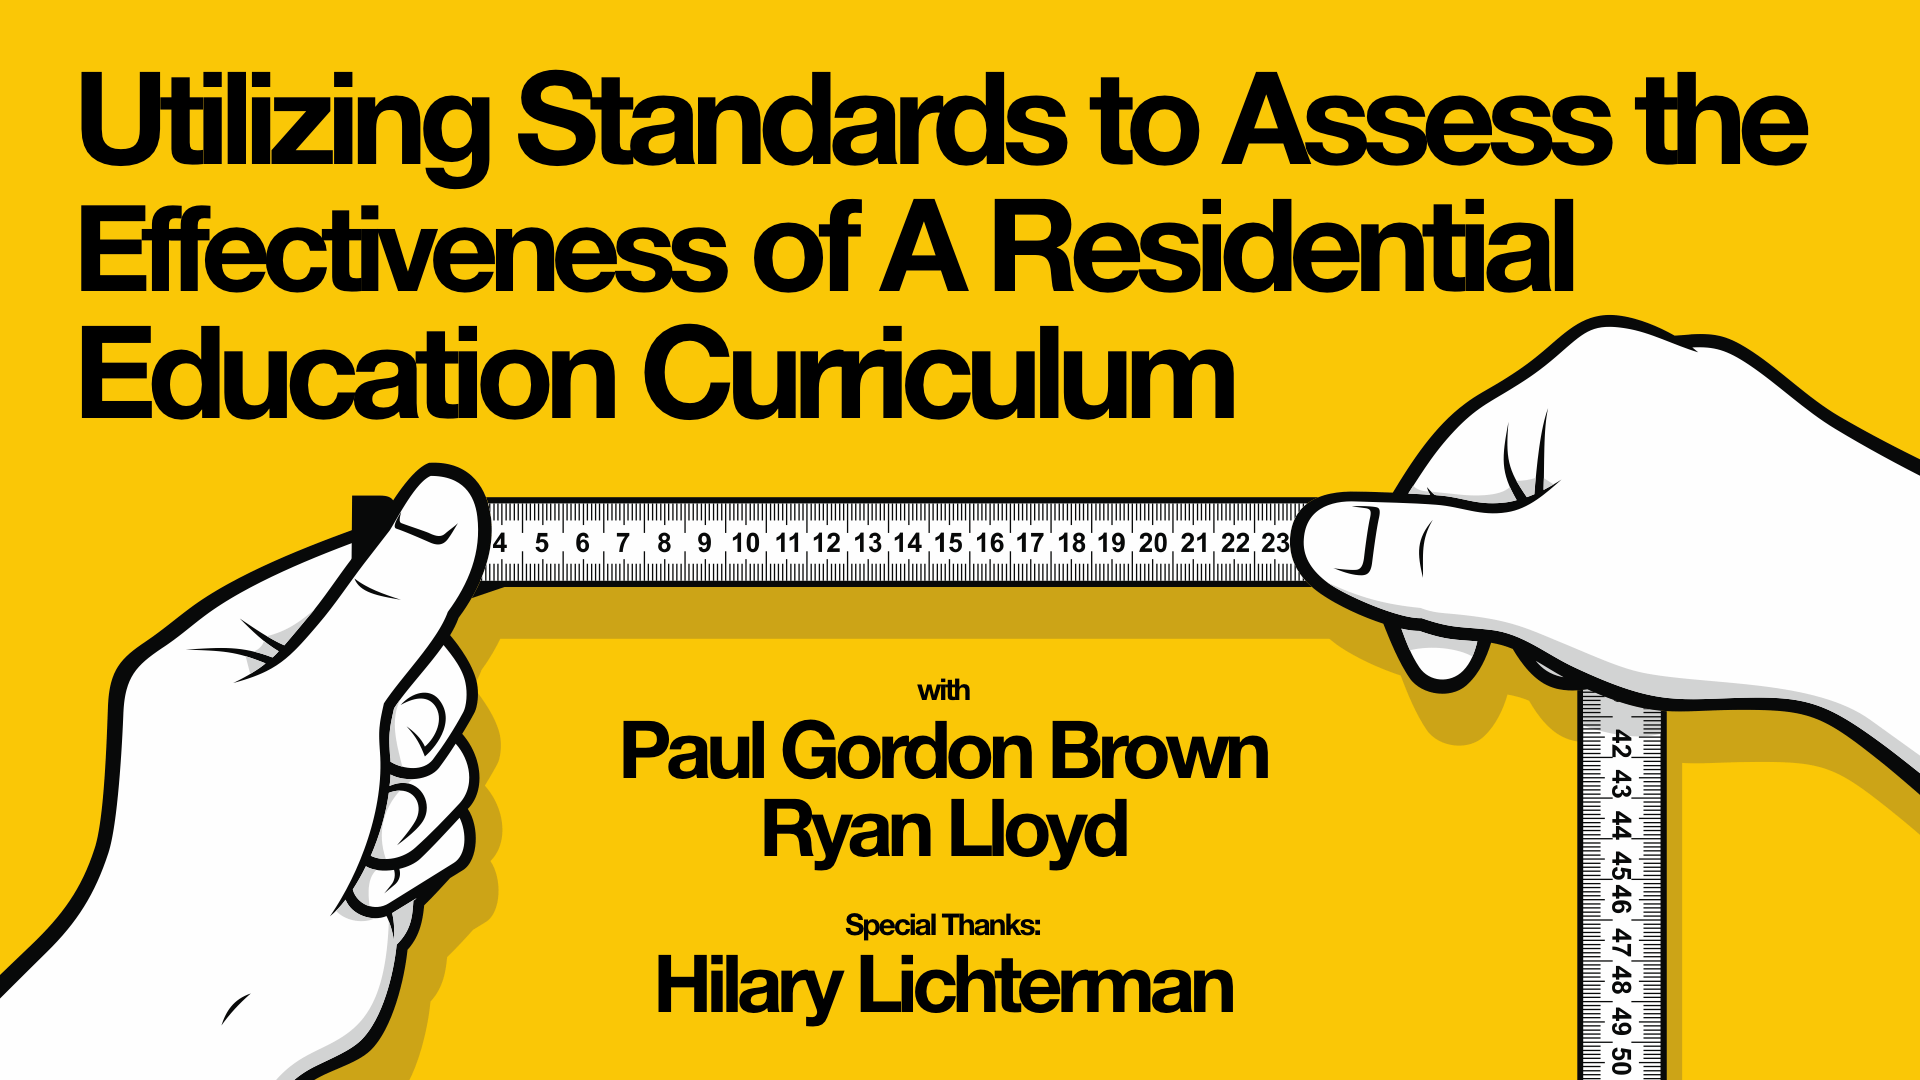 Utilizing Standards to Assess the Effectiveness of A Residential Education Curriculum